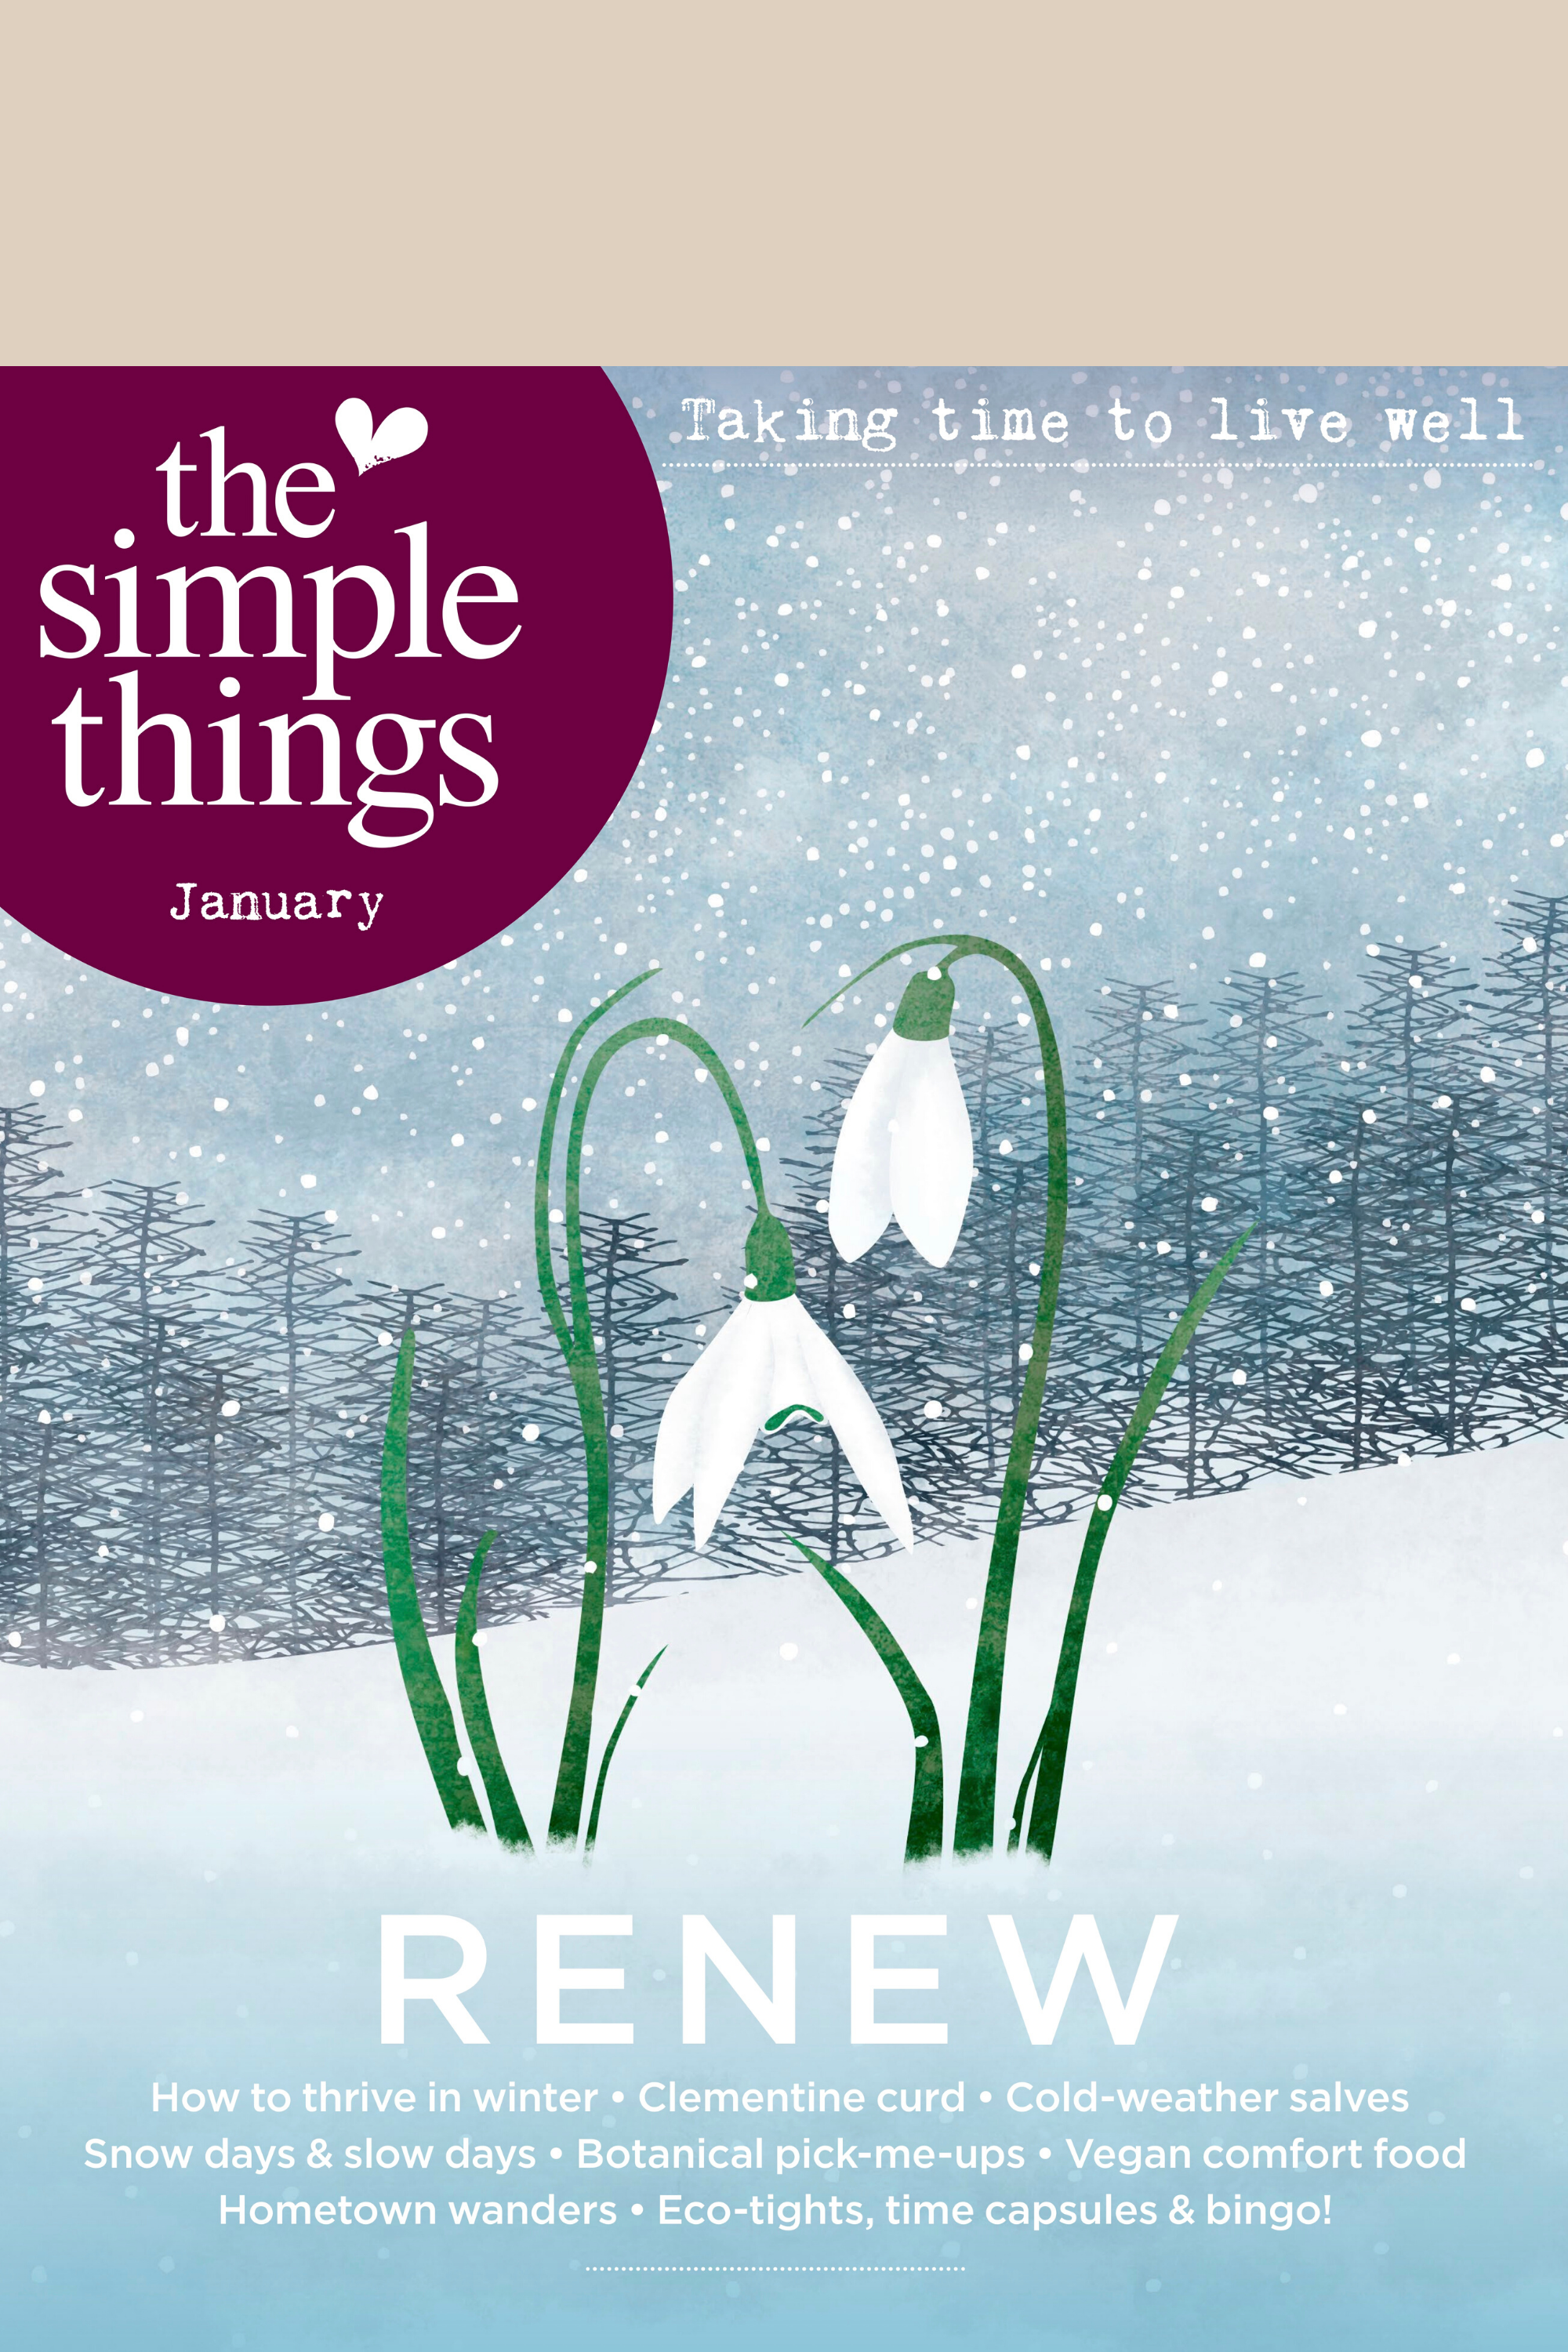 The Simple Things issue 91 January